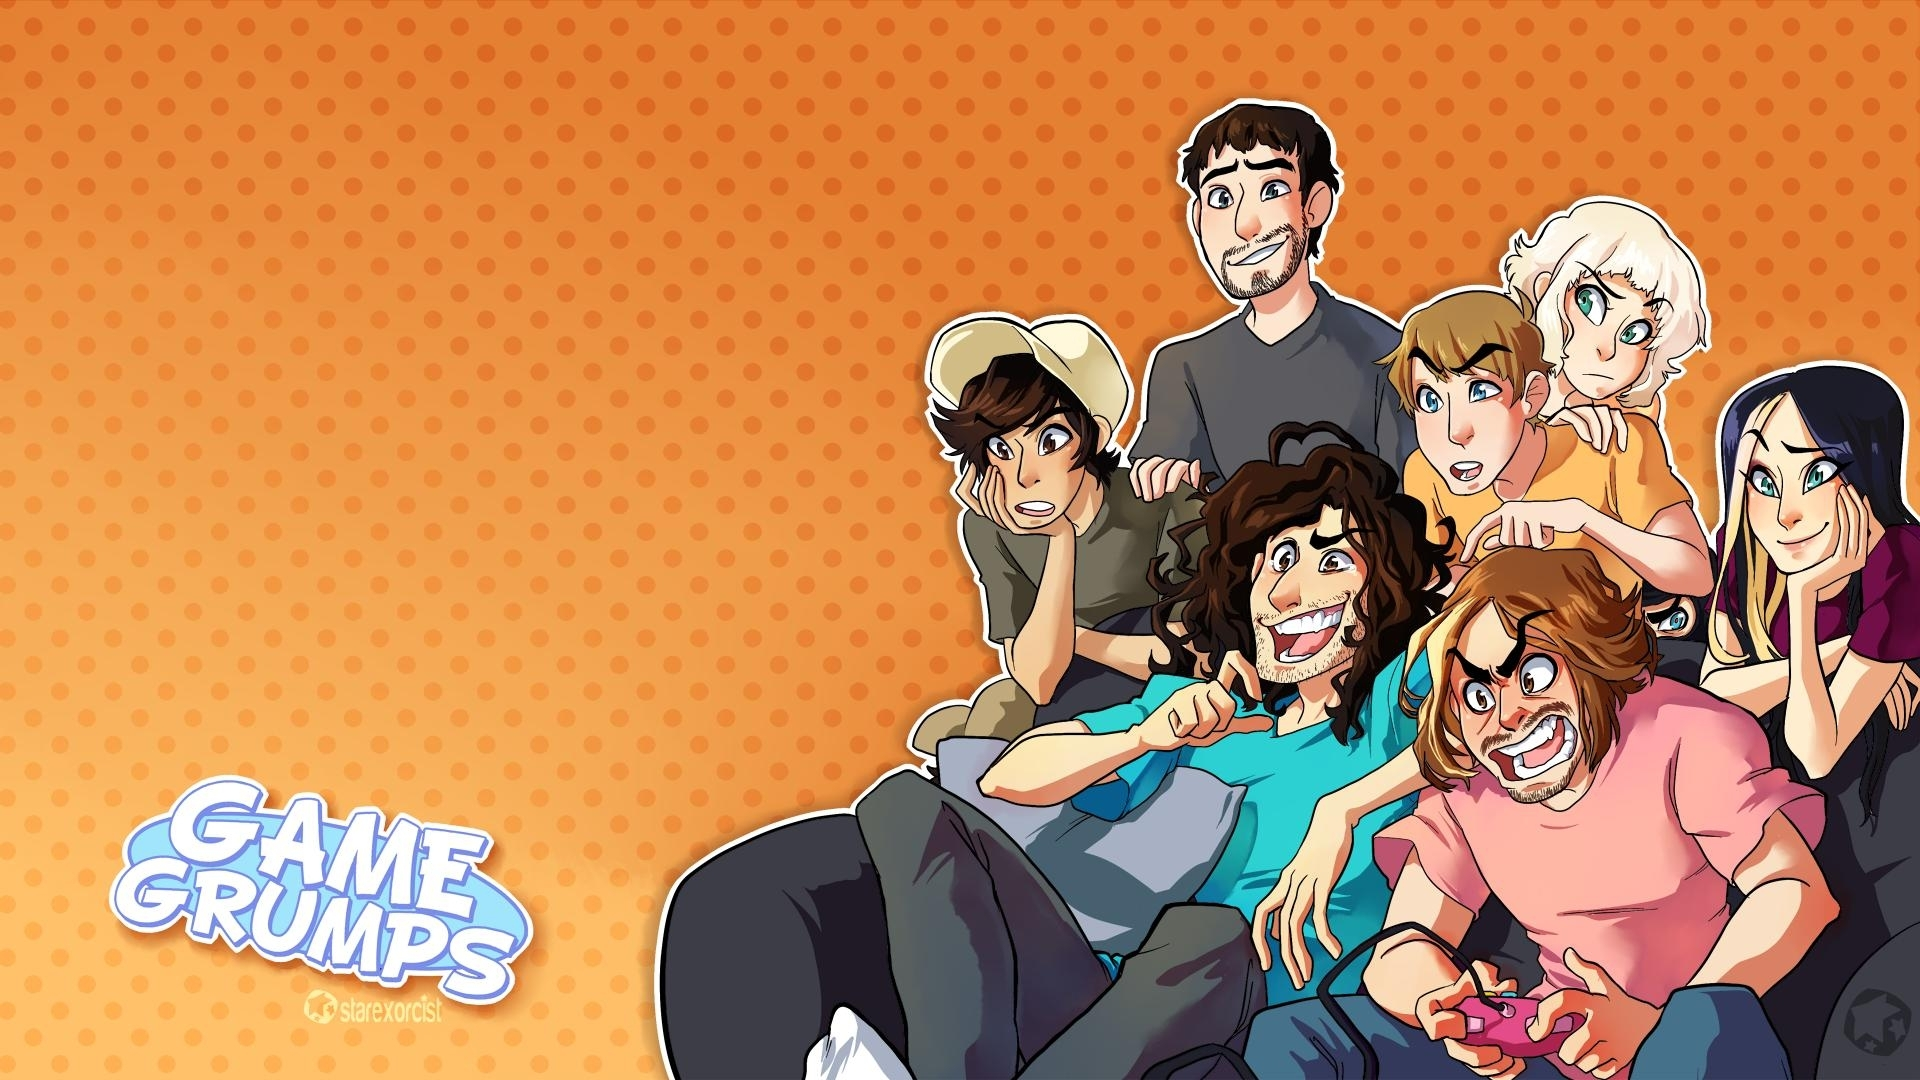 game grumps wallpapers - wallpaper cave